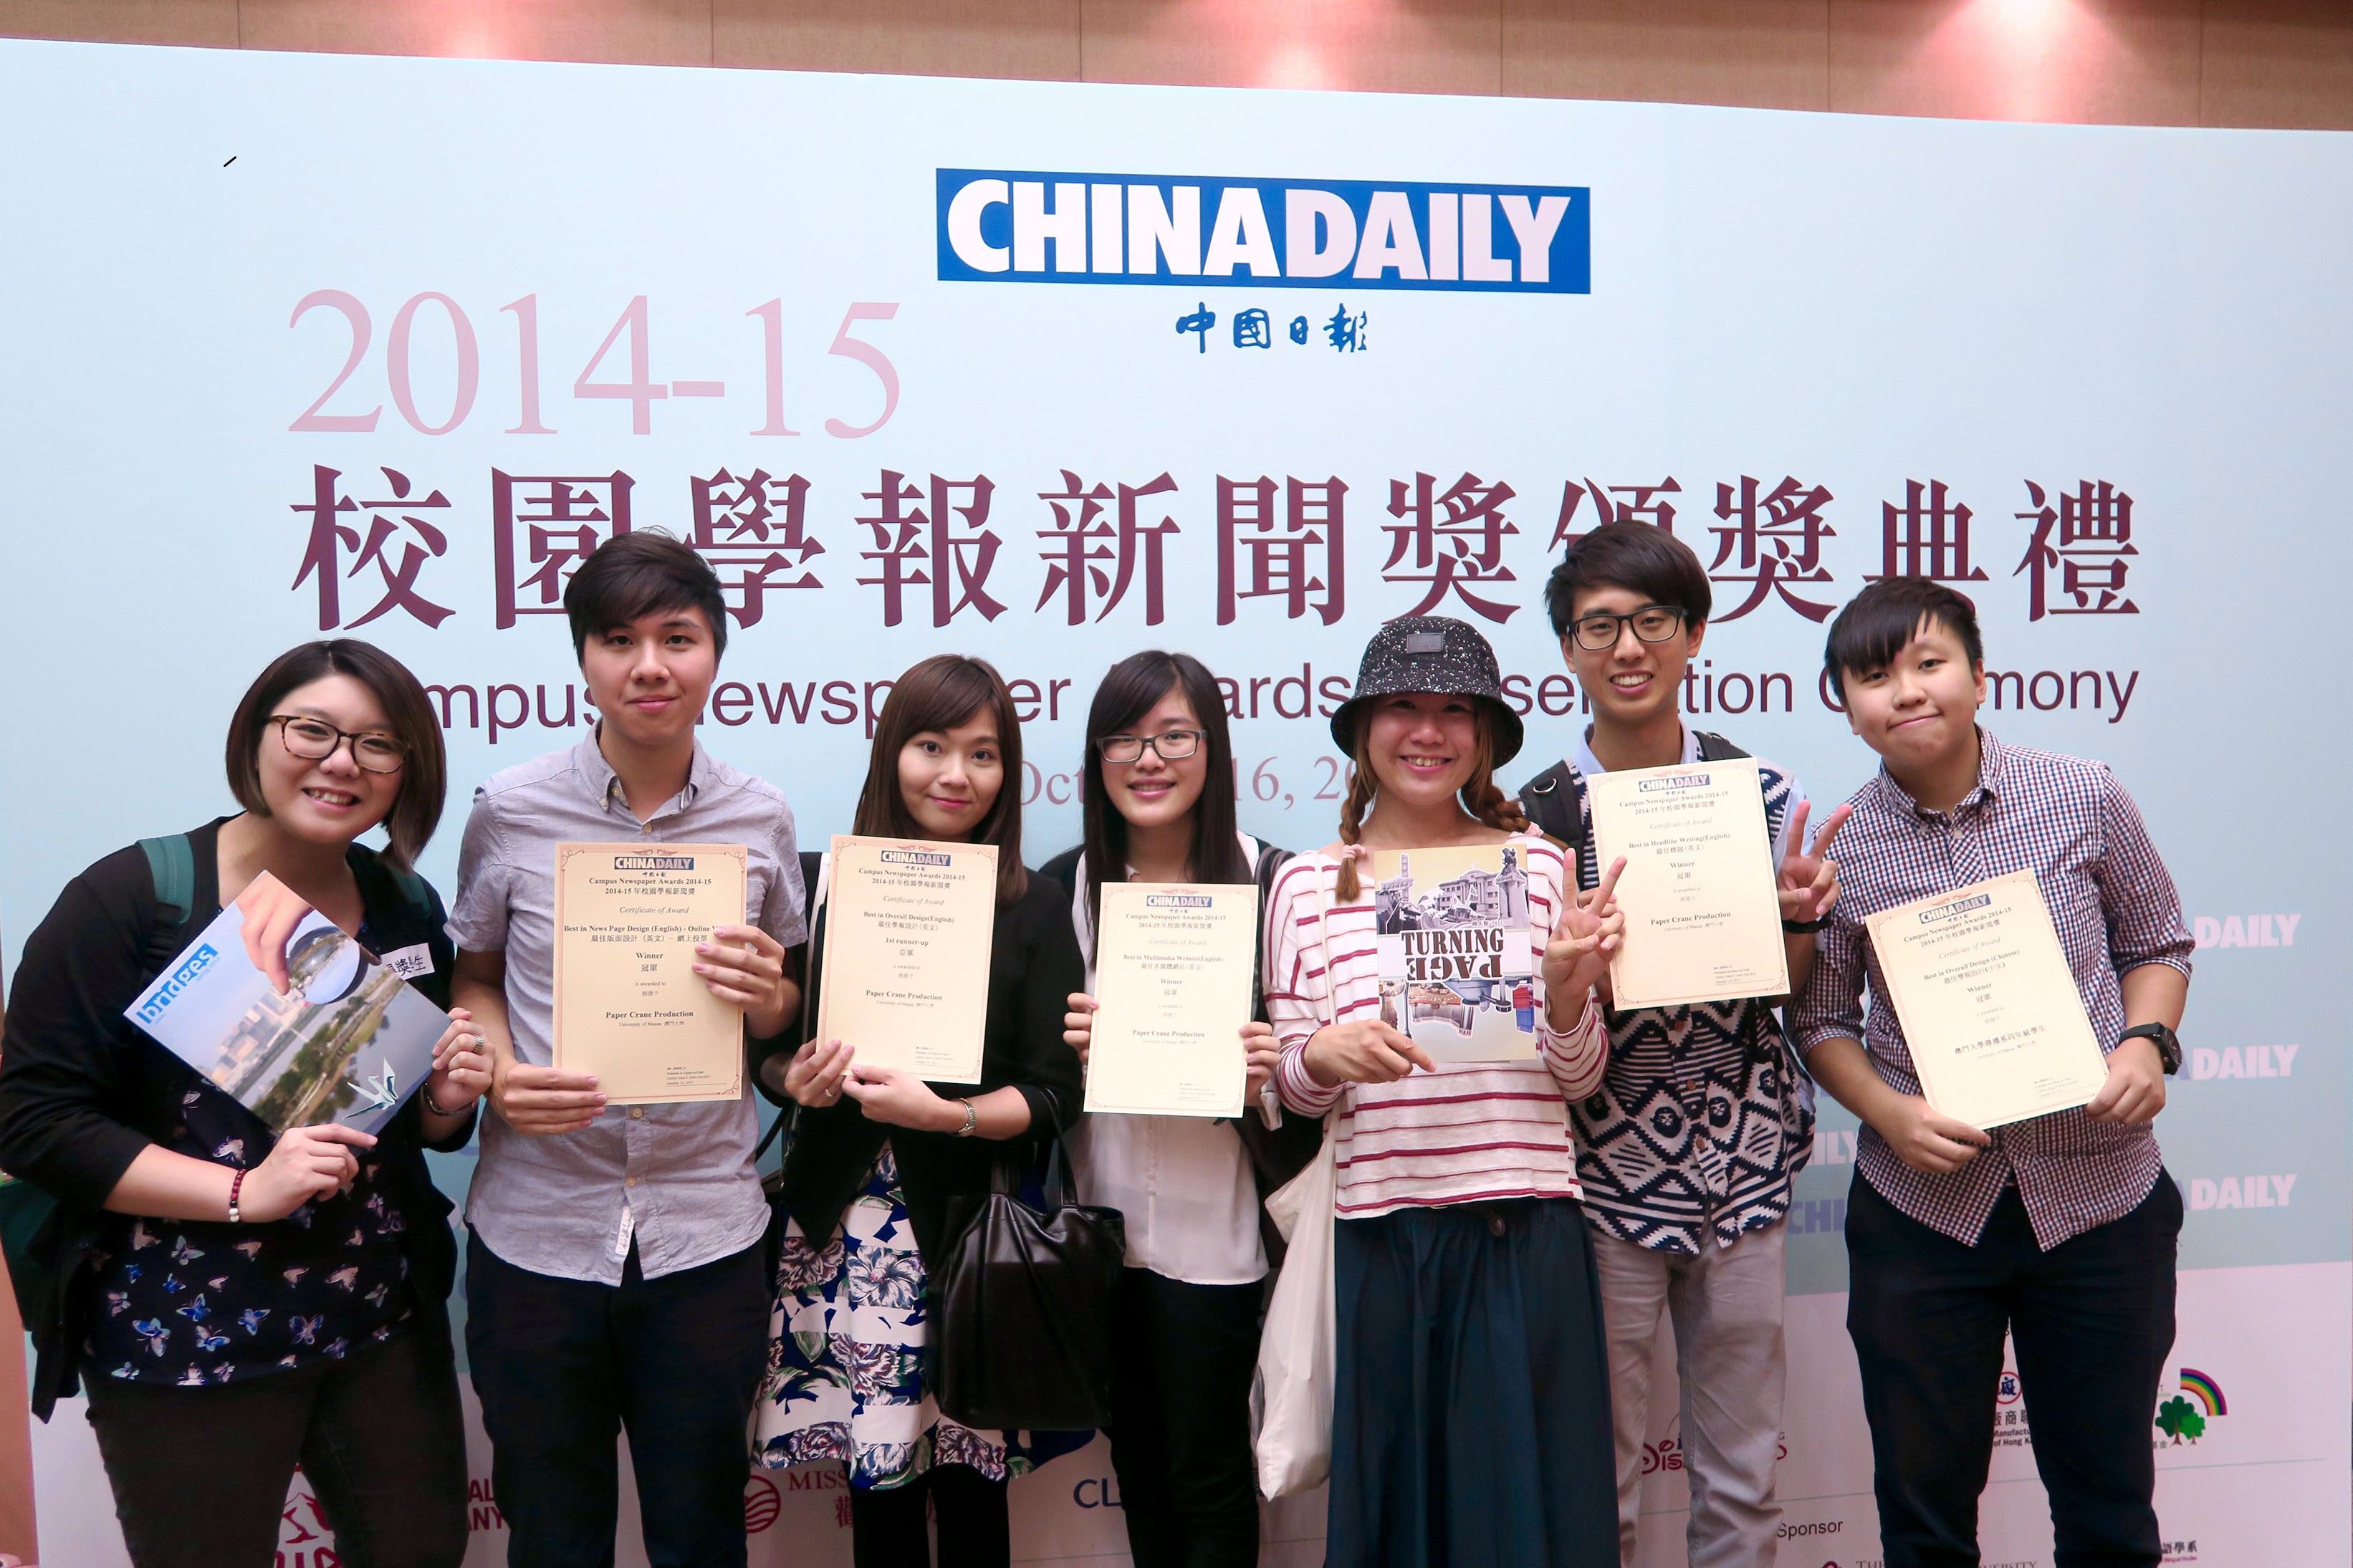 Department of Communication students win 5 prizes at China Daily Campus Newspaper Award 2015